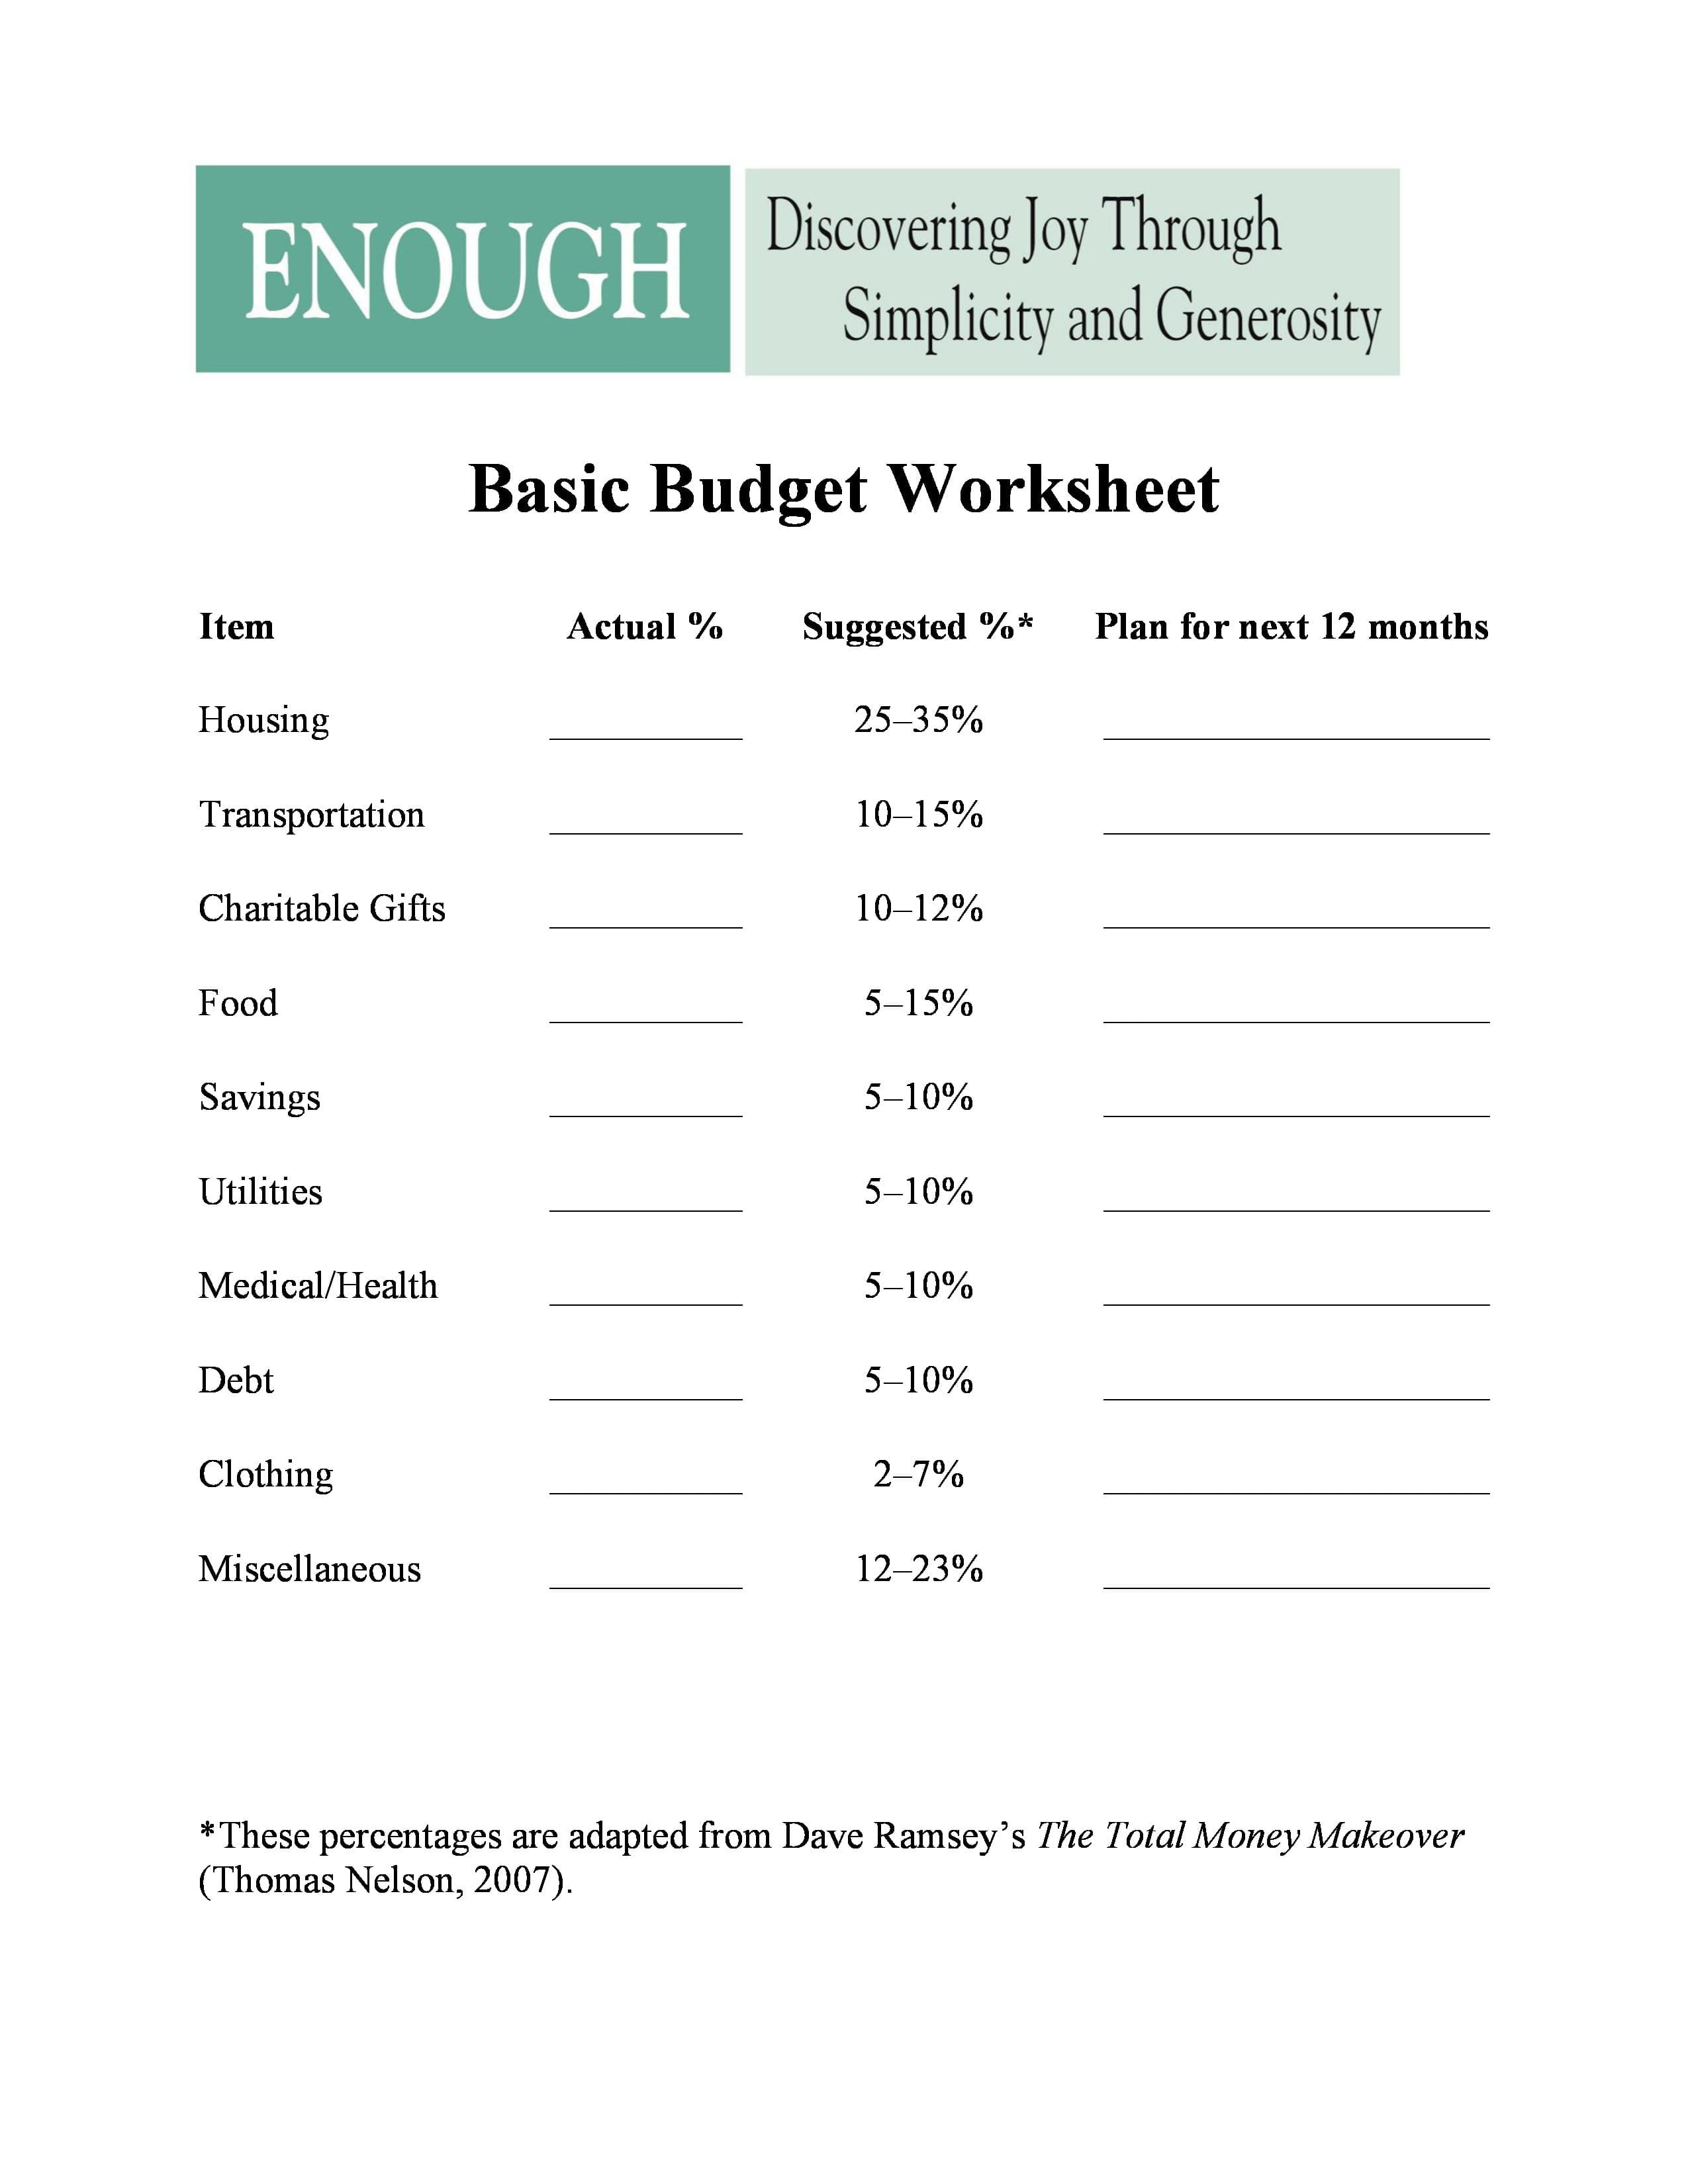 Basic Budget Worksheet Trinity United Methodist Church